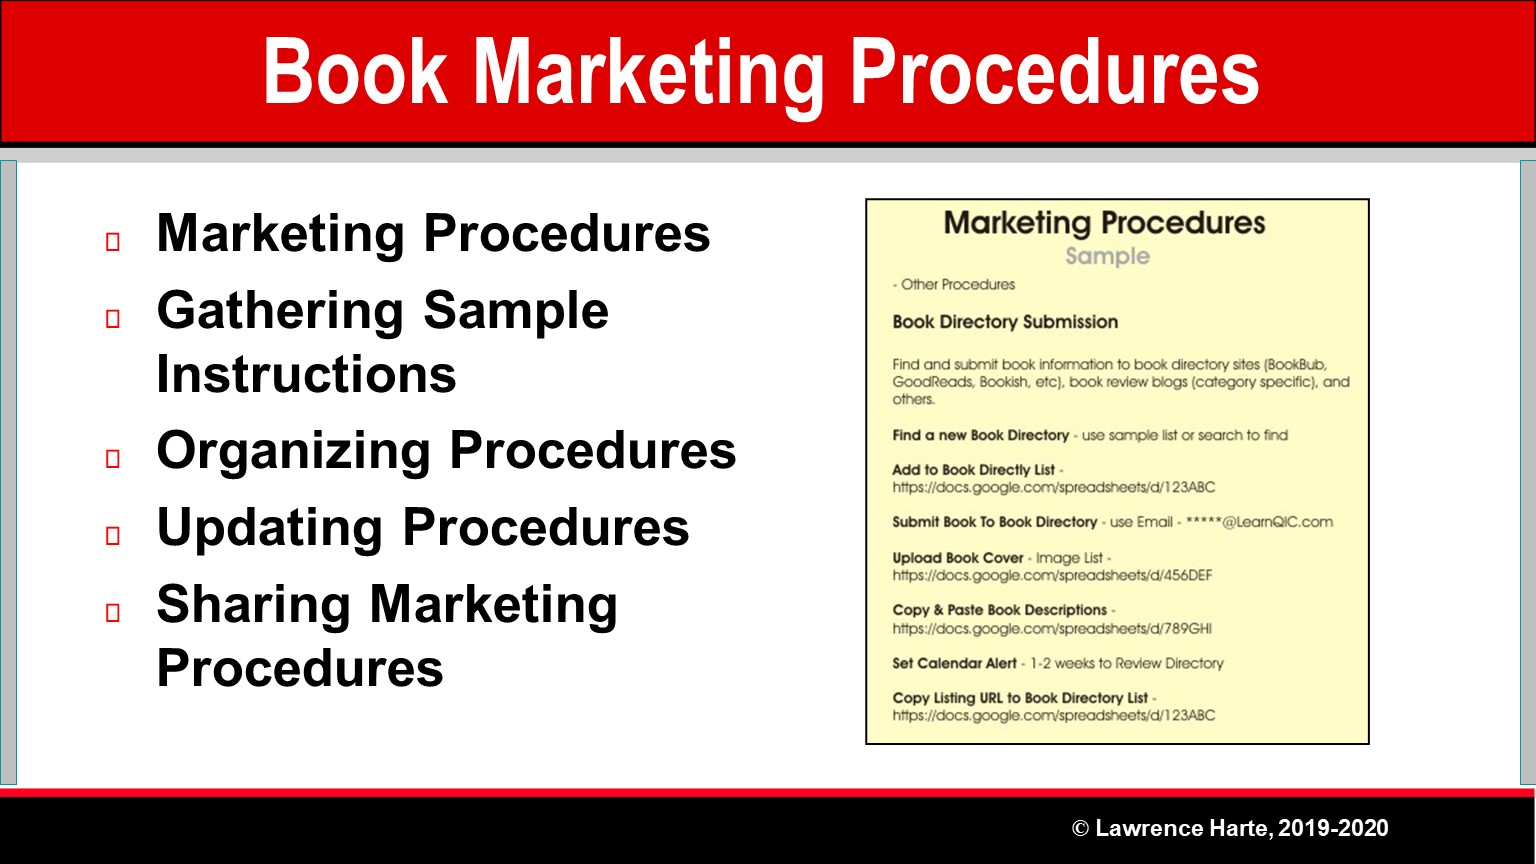 Book Pre-Launch Marketing Procedures